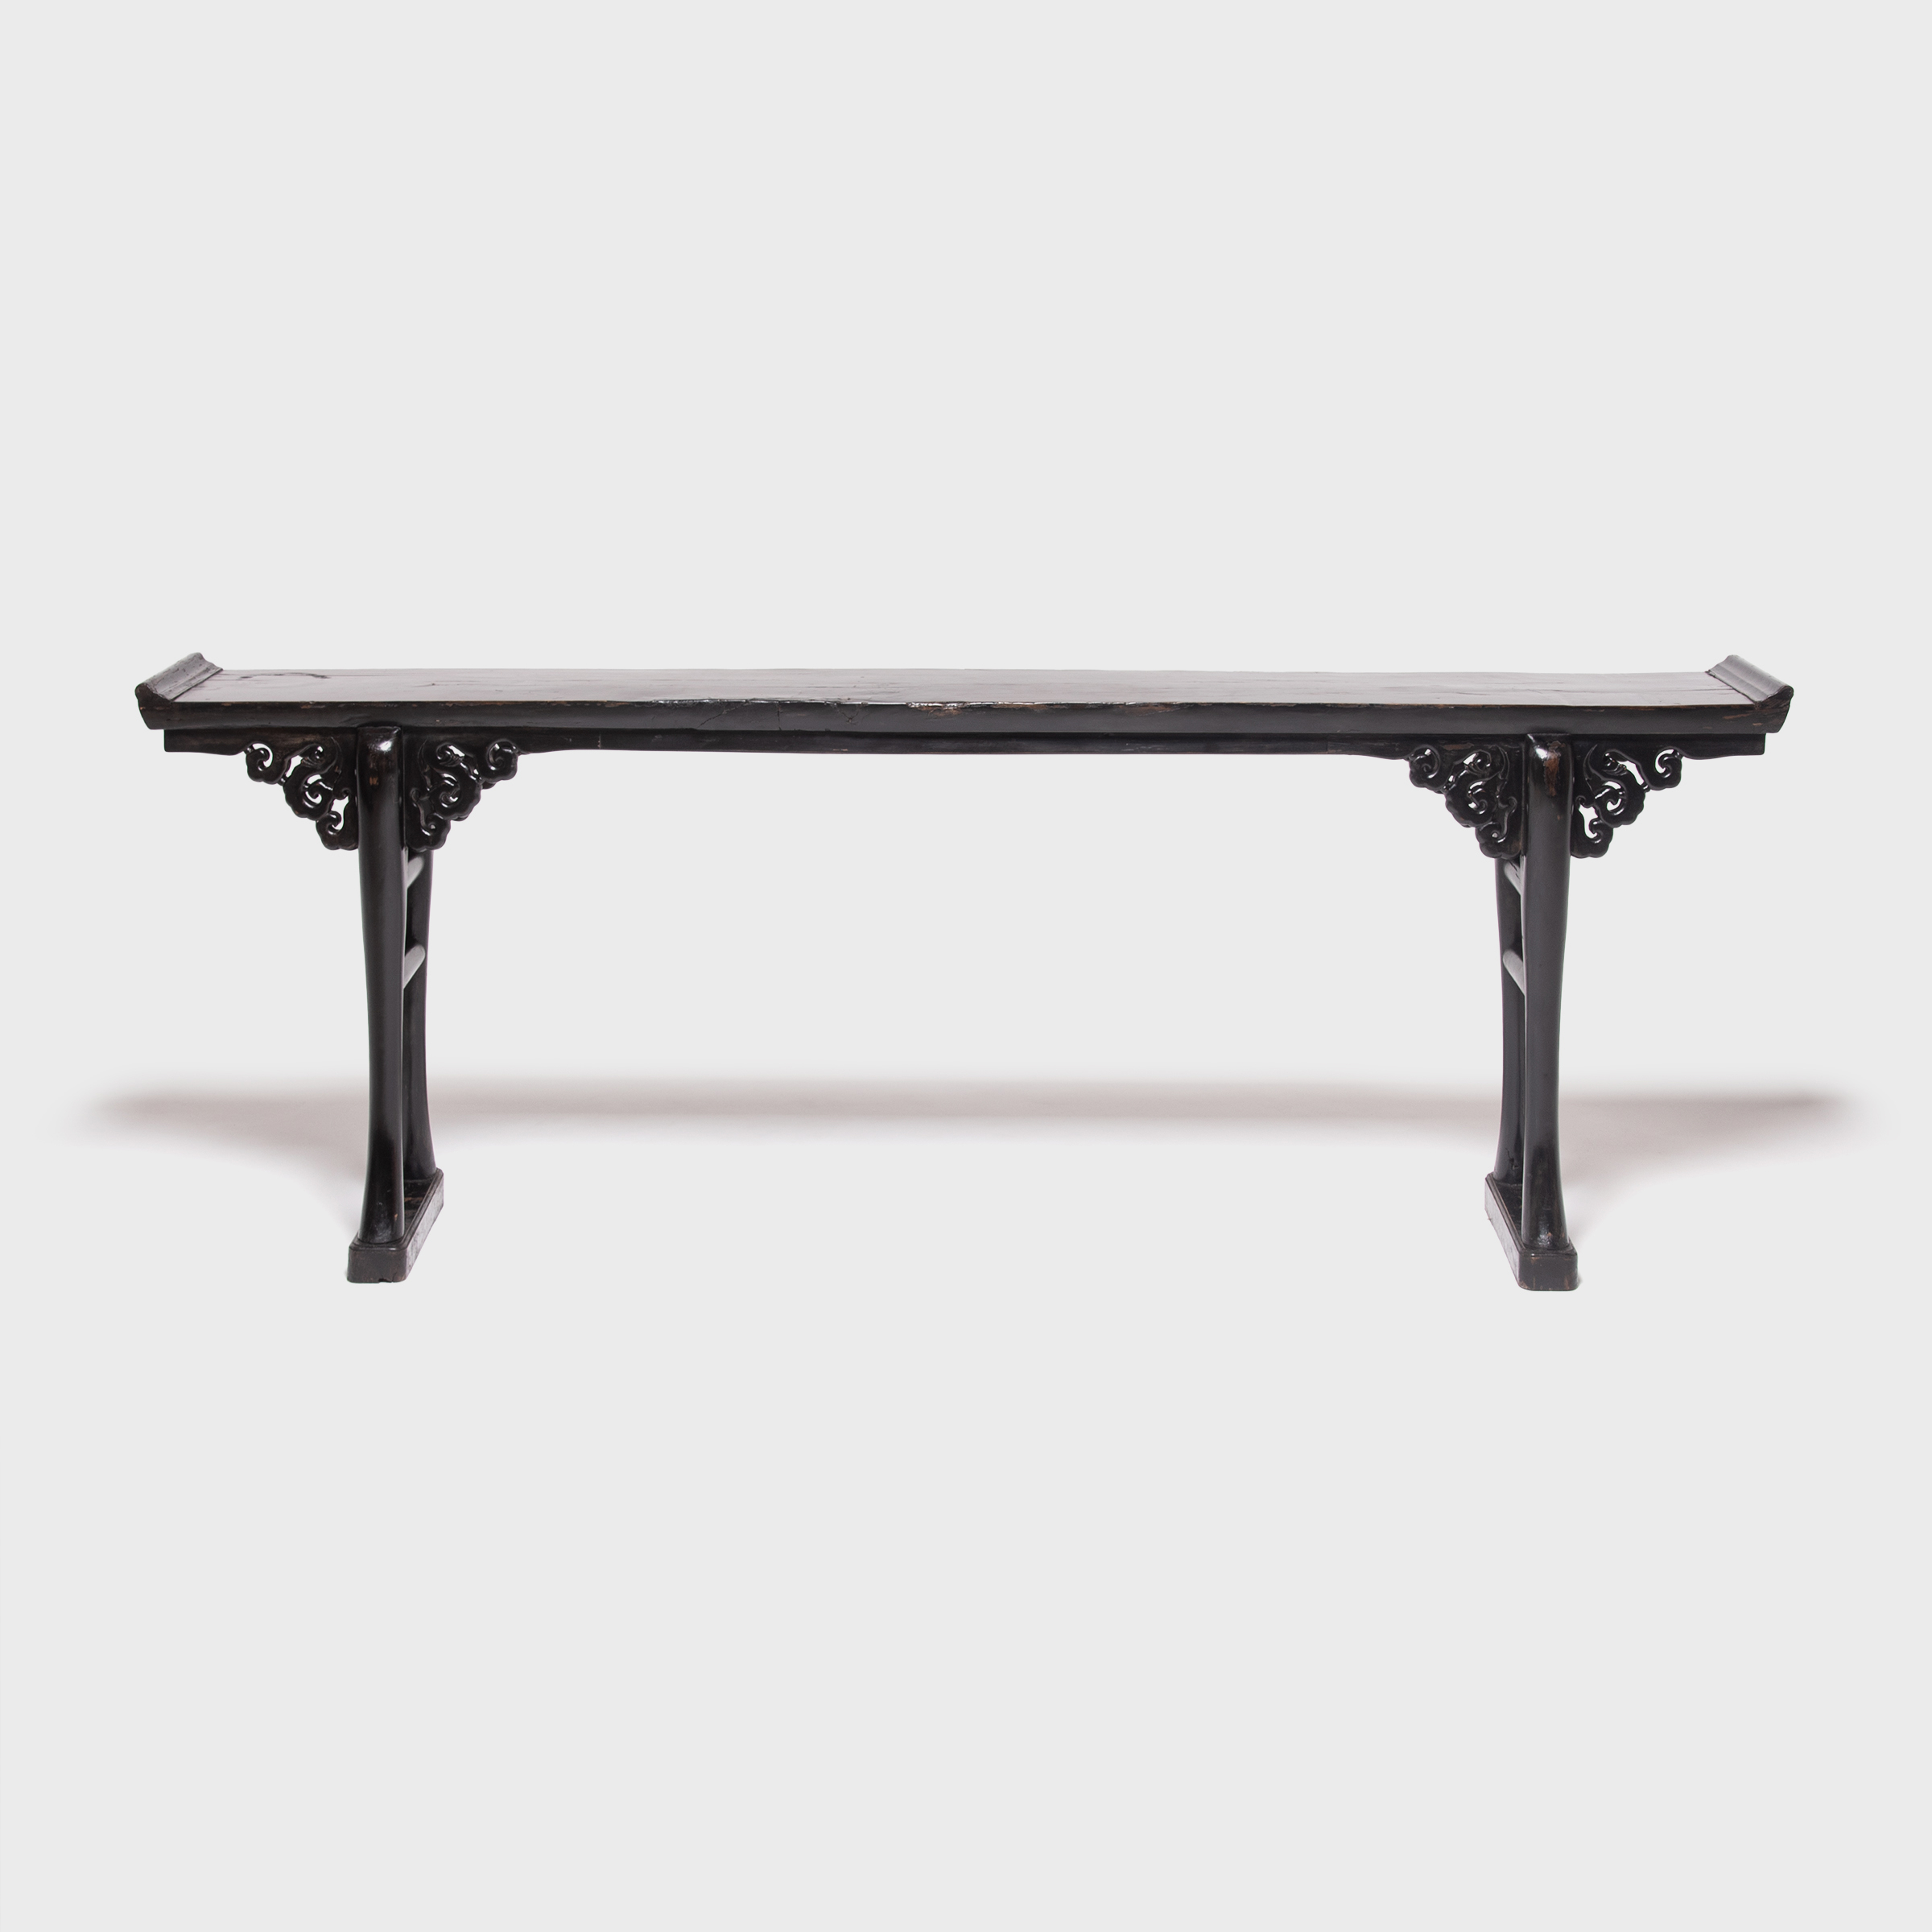 Chinese Tables And Antique Chinese Tables | Pagoda Red For Era Limestone Console Tables (View 13 of 20)